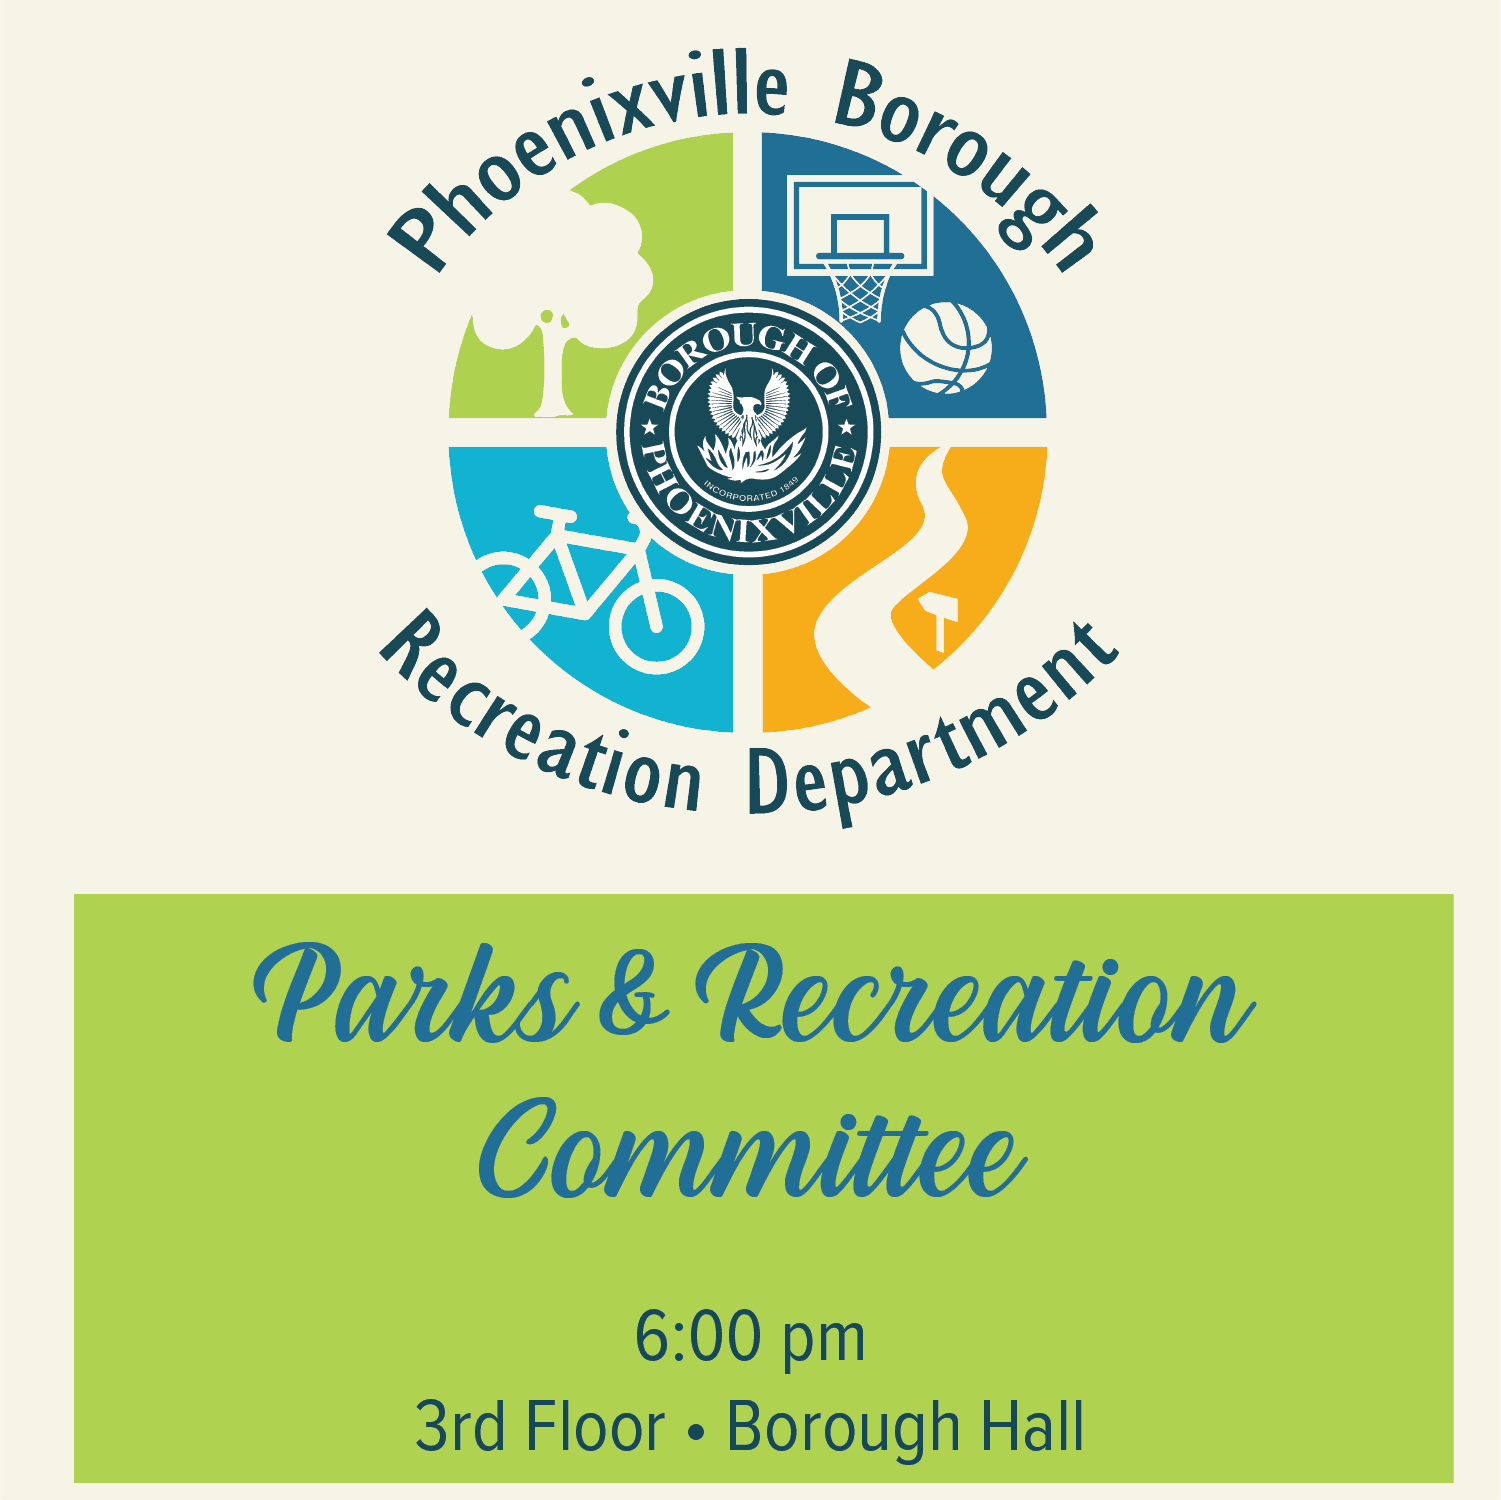 PARKS AND RECREATION COMMITTEE MEETING